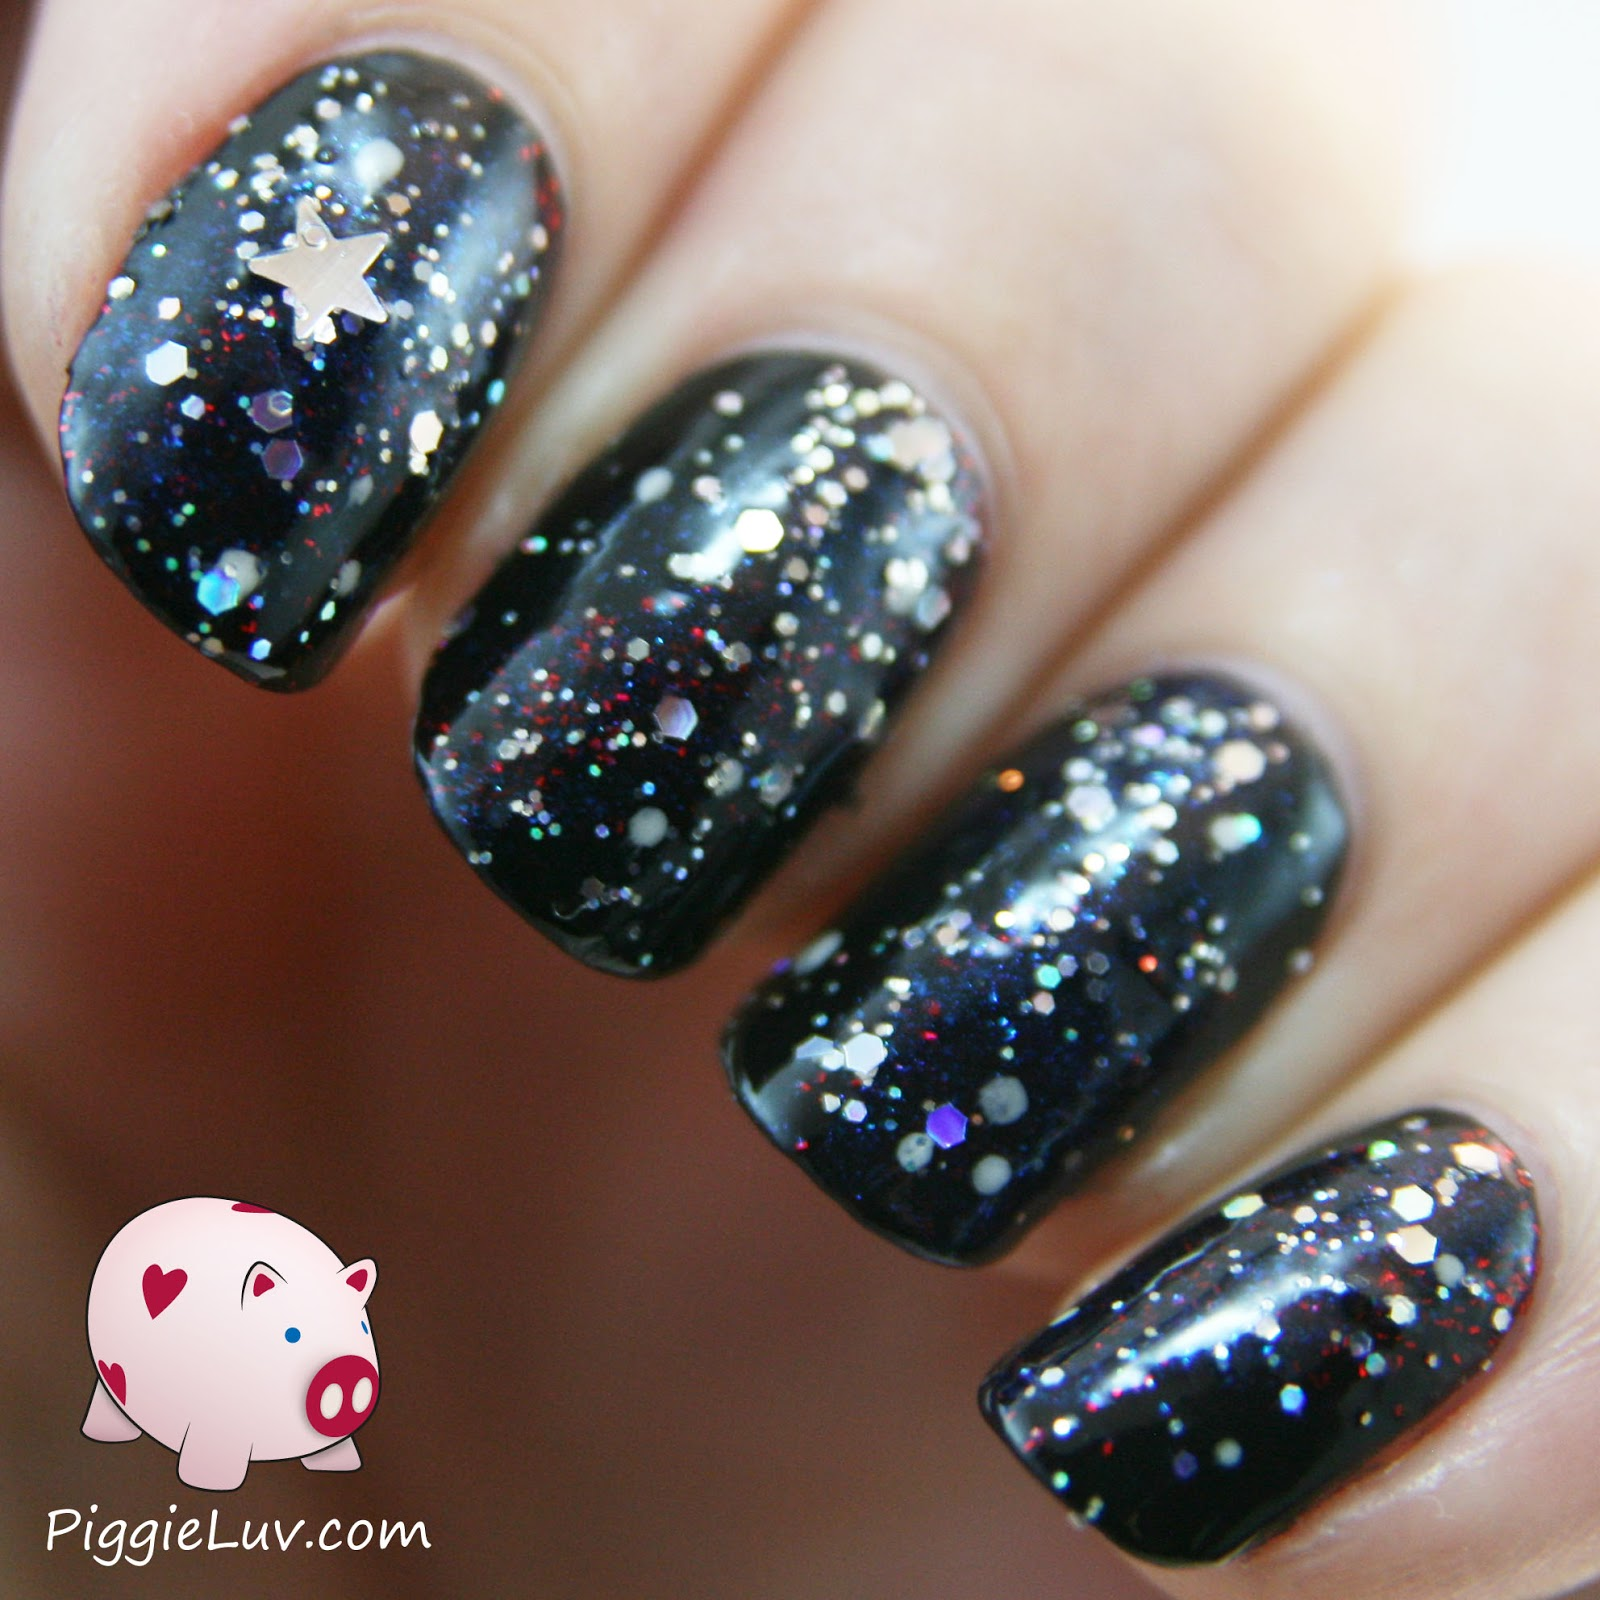 PiggieLuv: Galaxy nails with Kiss nail art kit